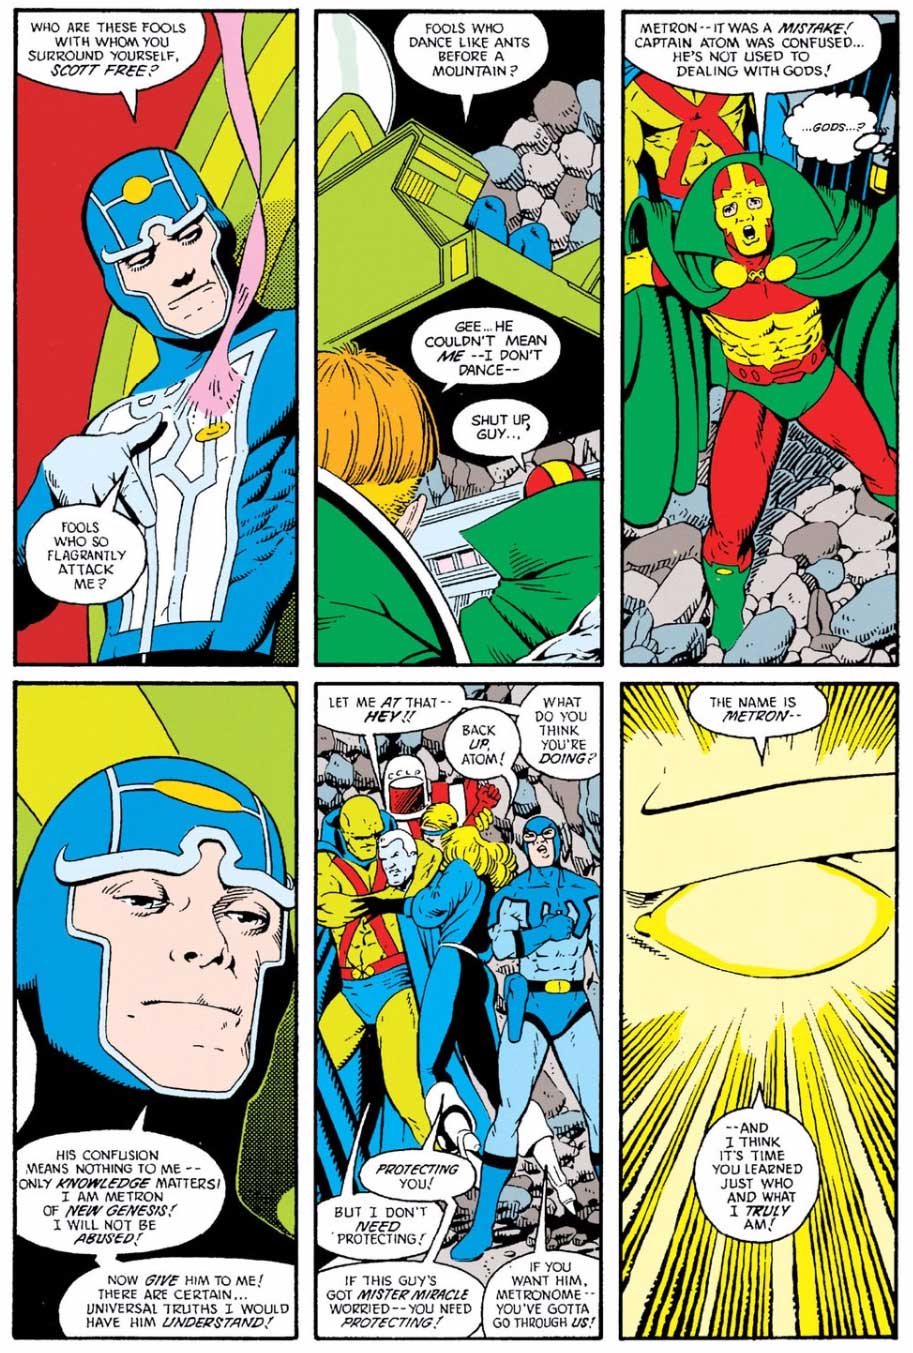 Justice League International #12 by Keith Giffen, JM DeMatteis, Kevin Maguire, and Al Gordon